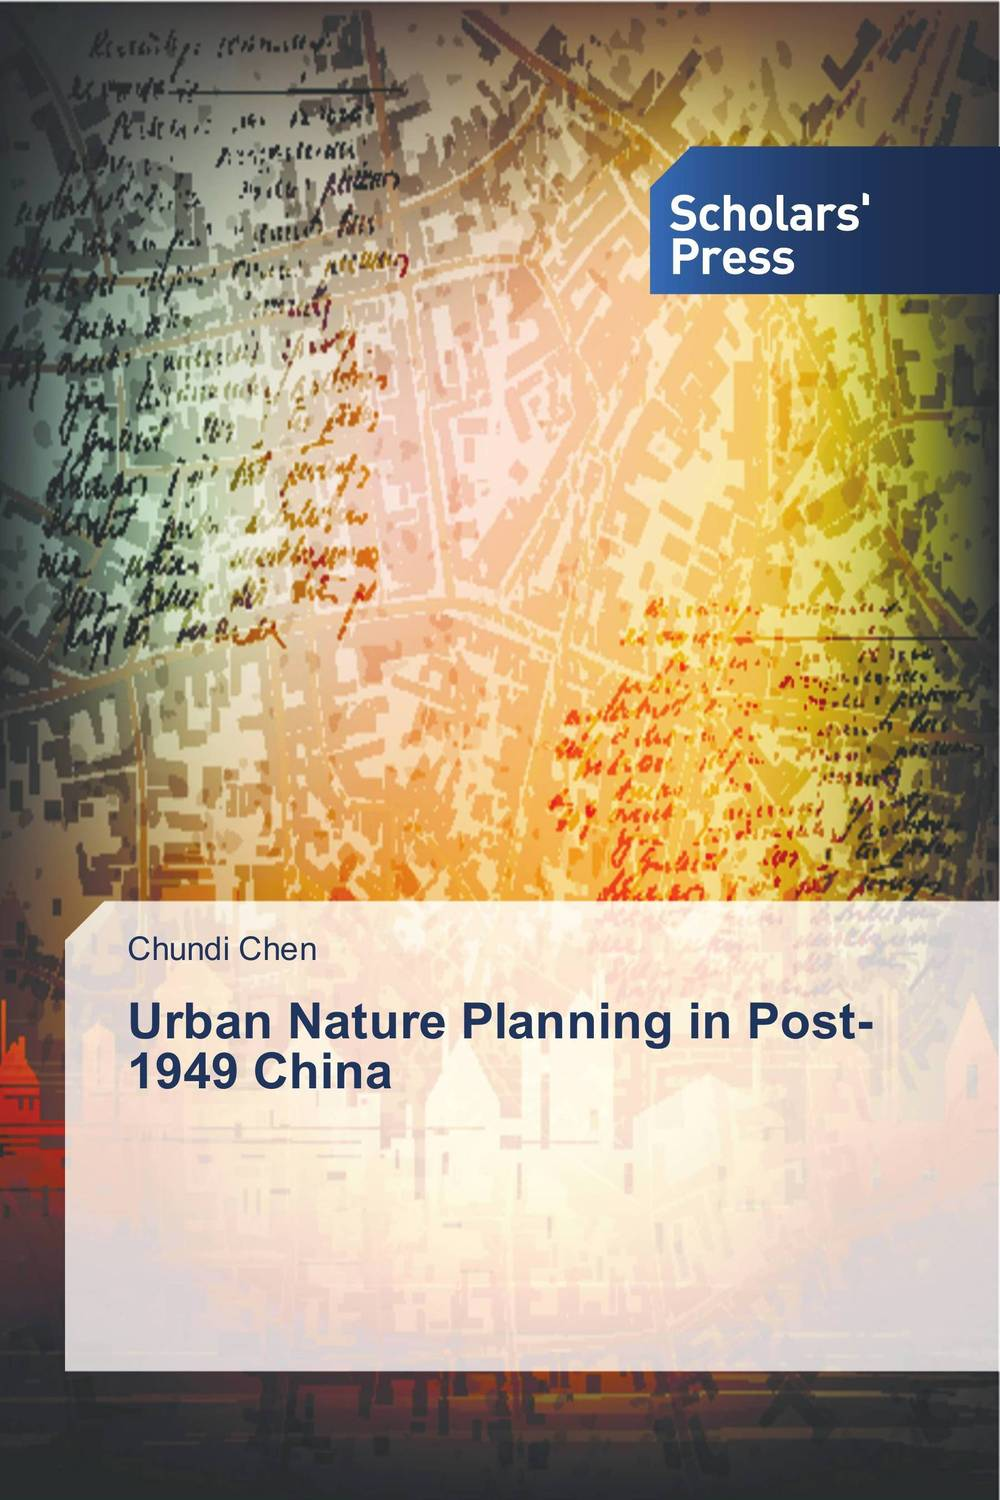 Urban Nature Planning in Post-1949 China garrett social reformers in urban china – the chinese y m c a